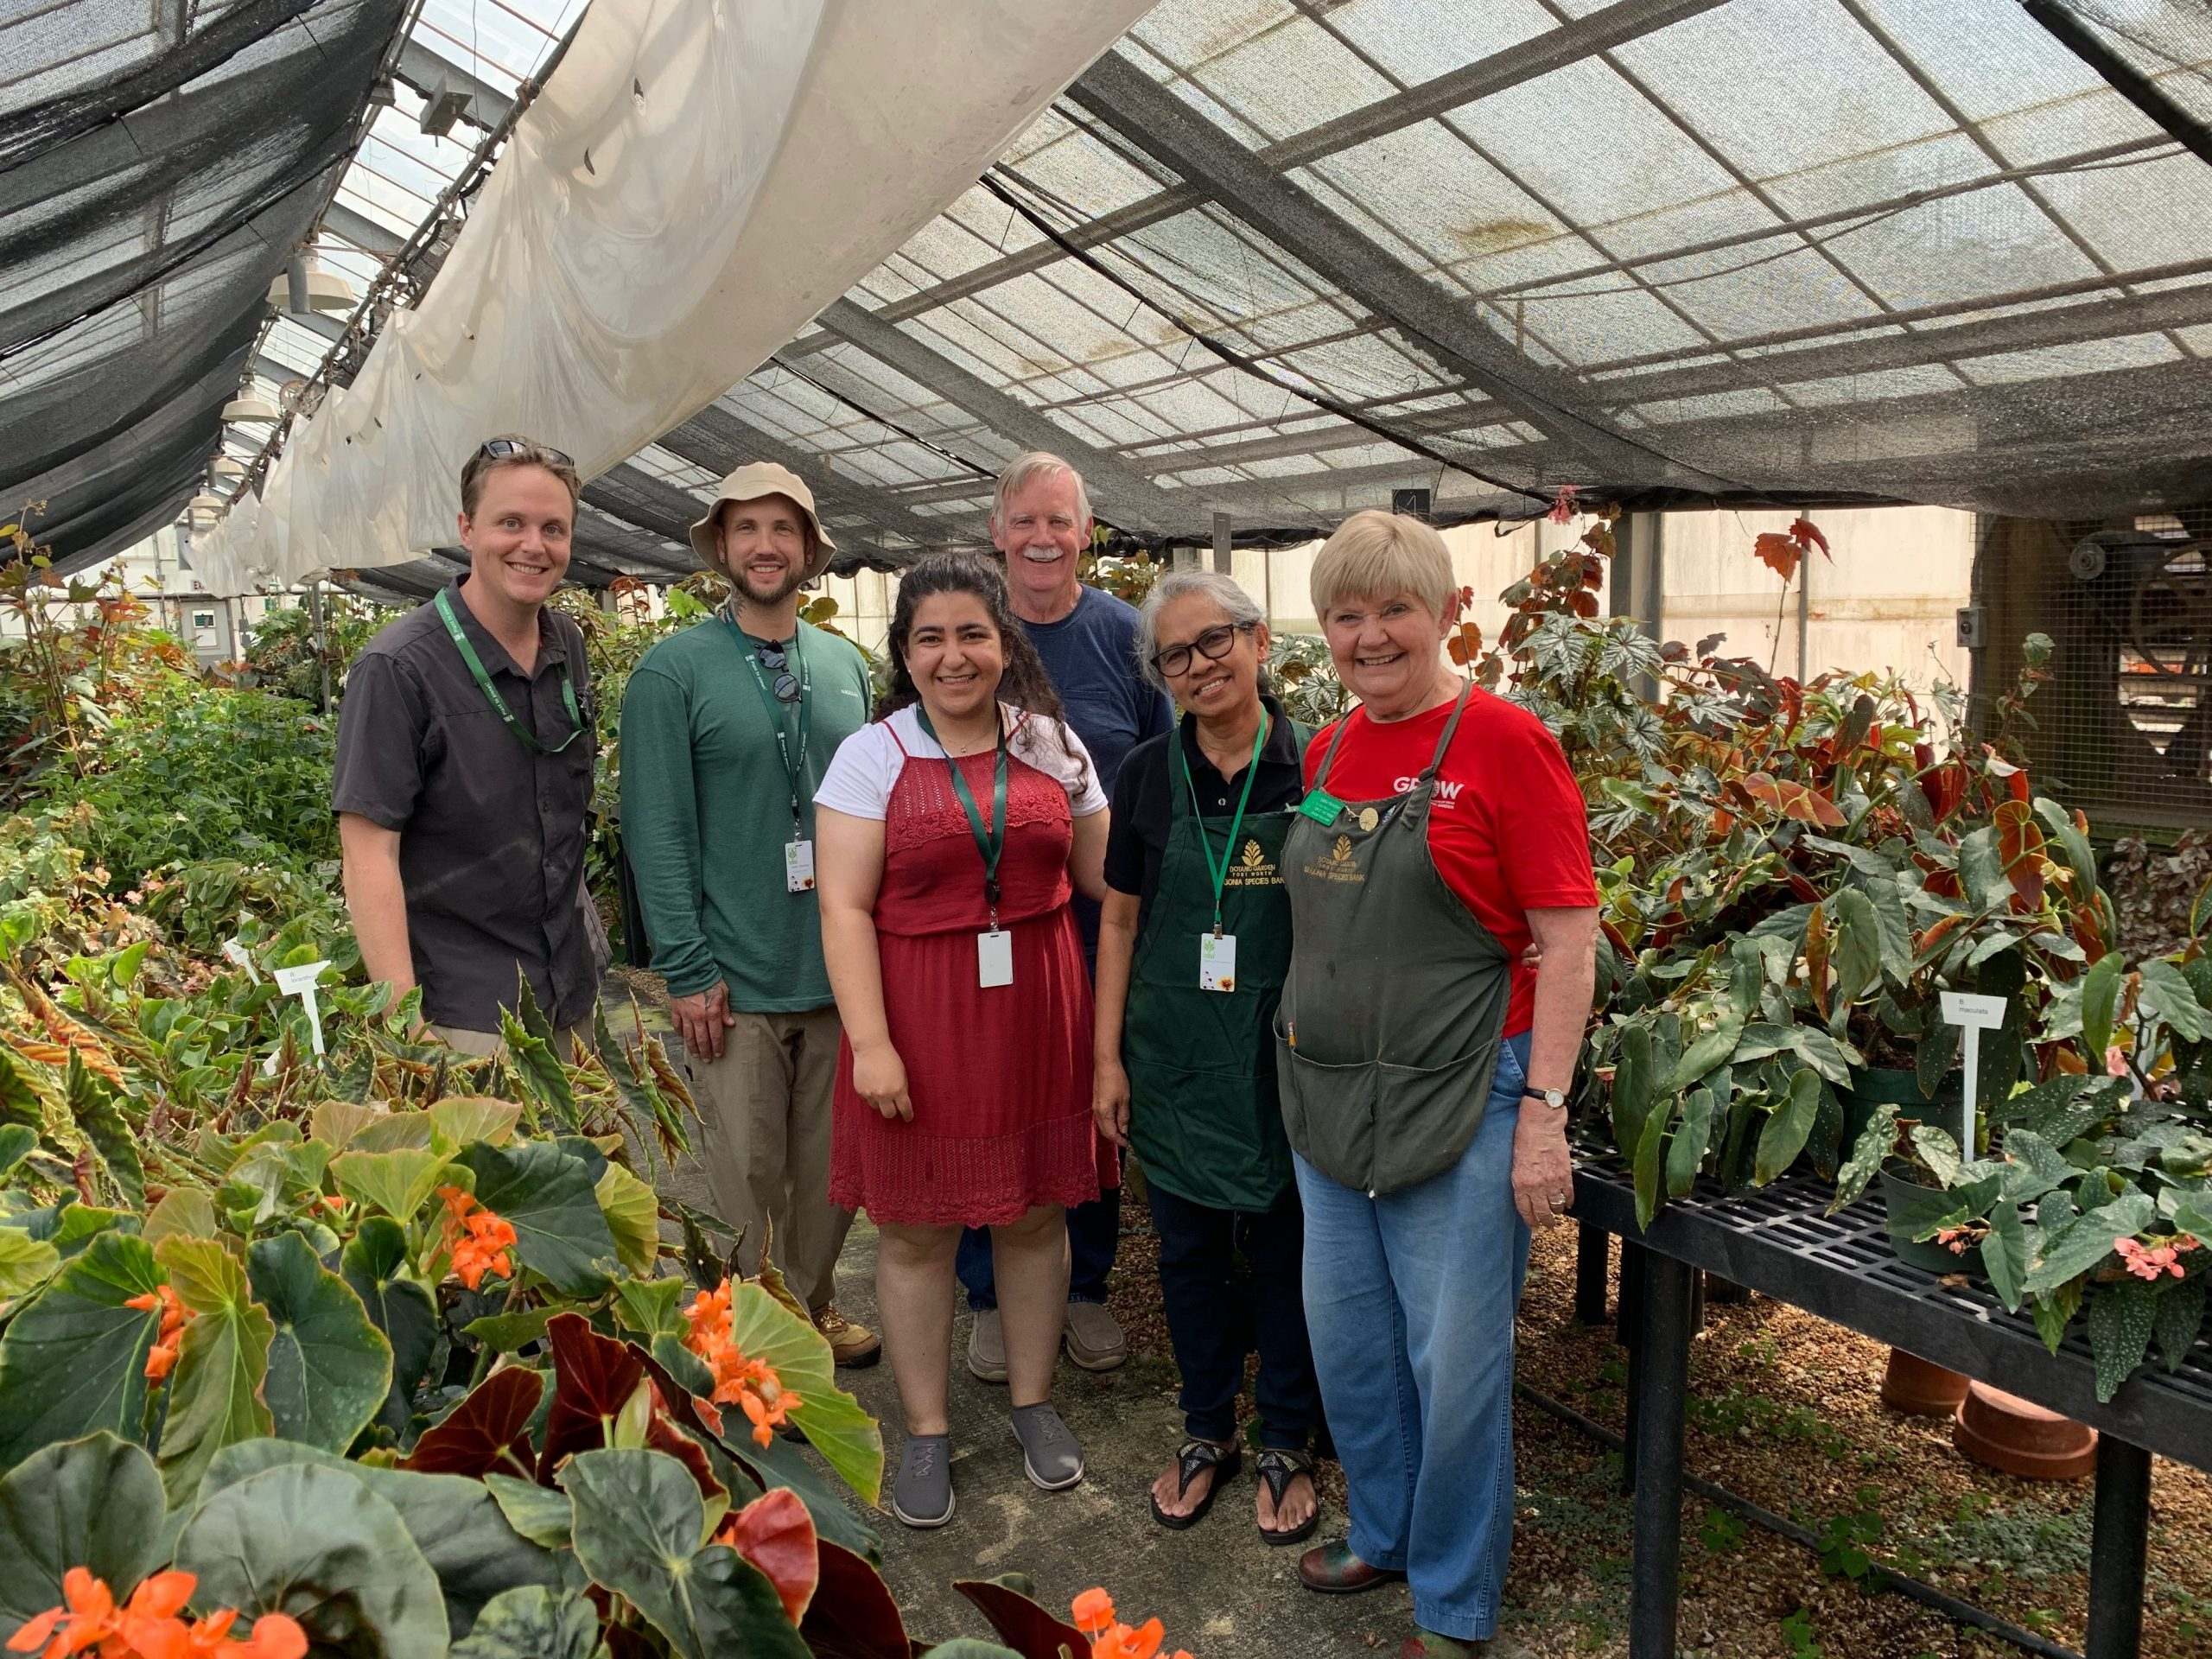 Part of the Nationally Accredited Begonia collection at the Fort Worth Botanic Gardens, from L to R: GGI-Gardens Director, Dr. Morgan Gostel, 2019 GGI-Gardens Fellows Seth Hamby and Farahnoz Khojayori, Begonia Collections Volunteer, Don Miller, Visiting Begonia expert, Dr. Rosario Rubite, and Begonia Collections Volunteer, Taddie Hamilton.